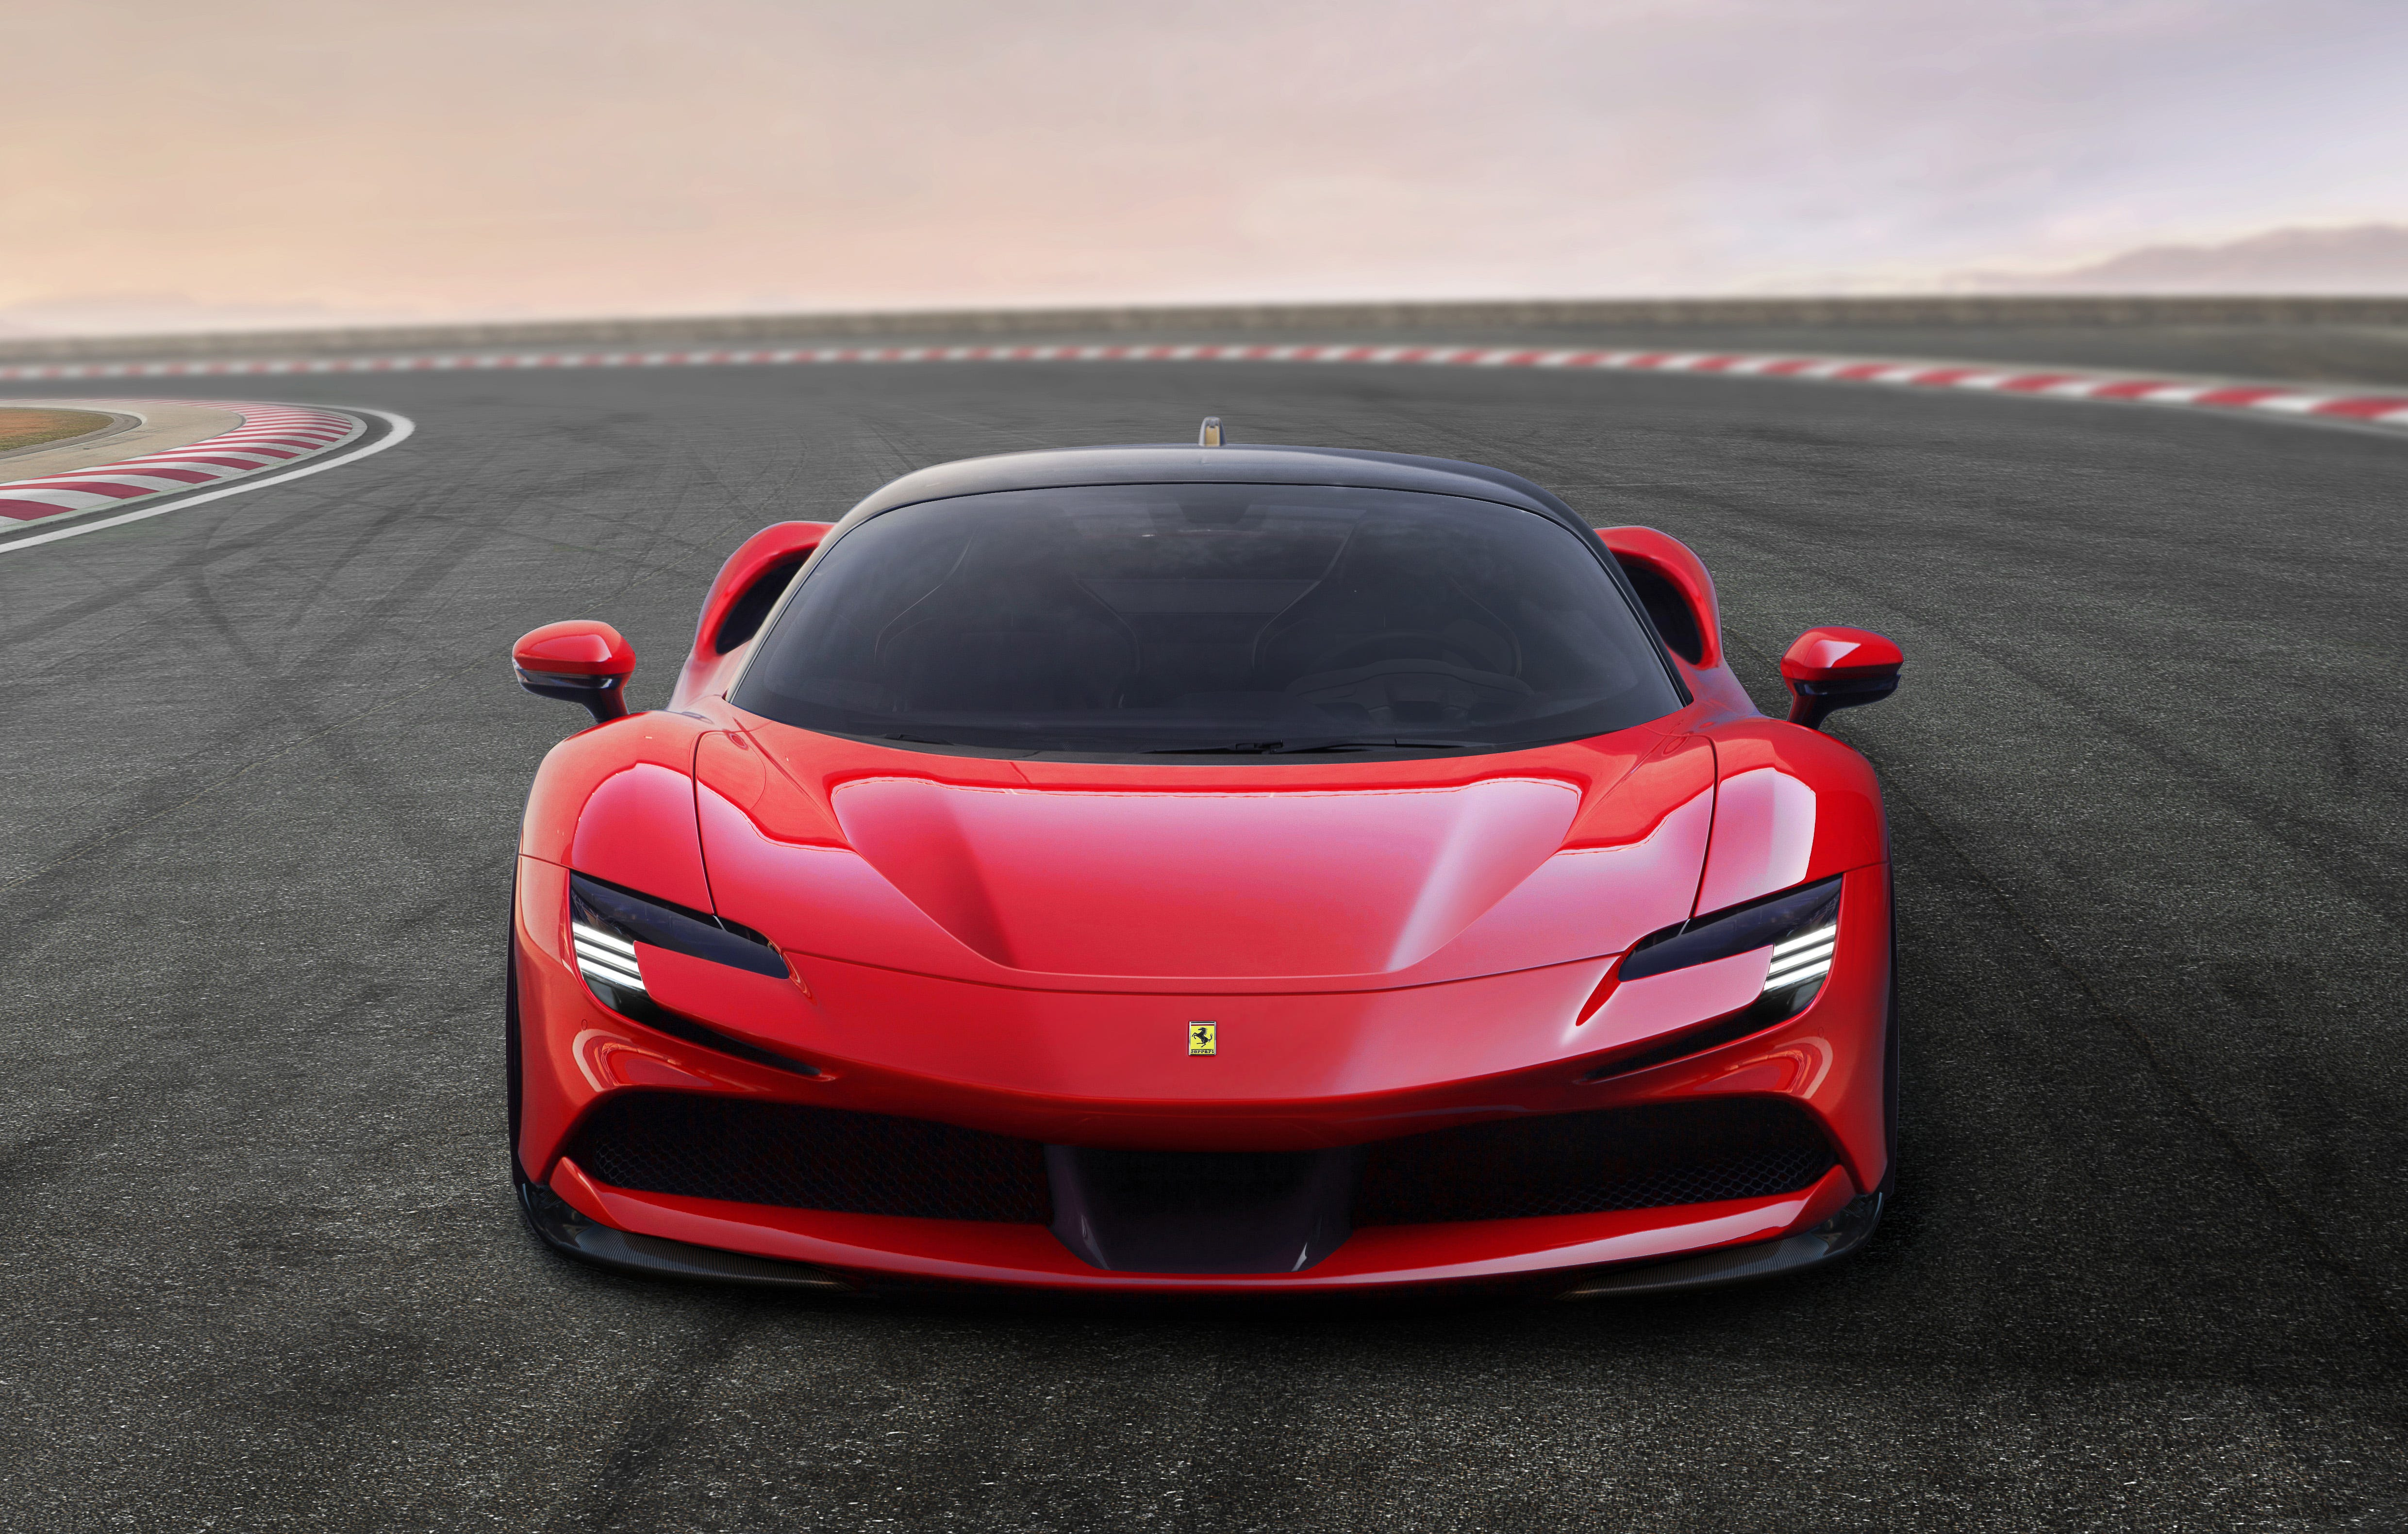 ferrari to unveil 3 new models by end of 2019